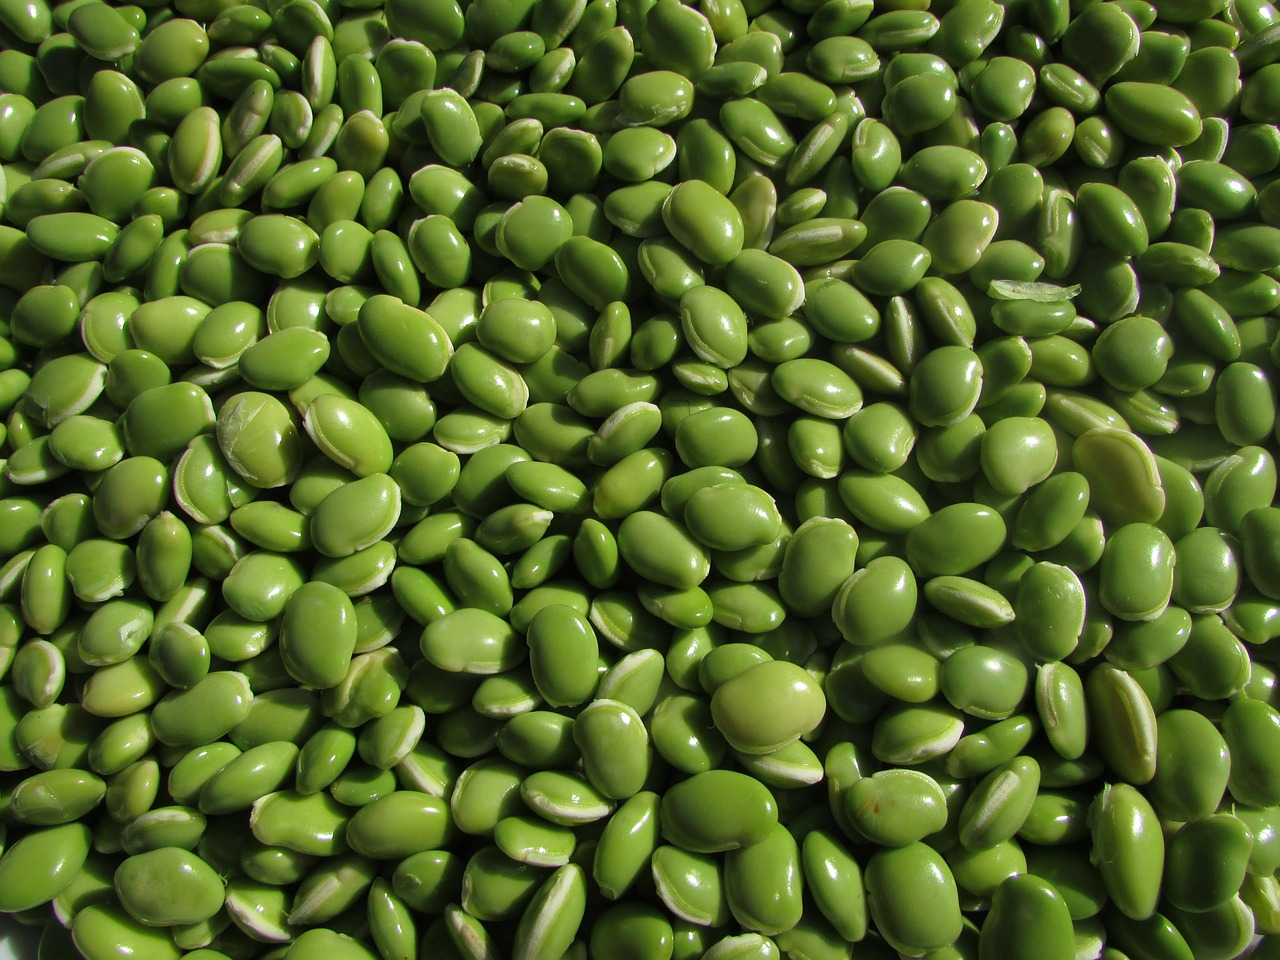 beans leguminous plants pulse free photo